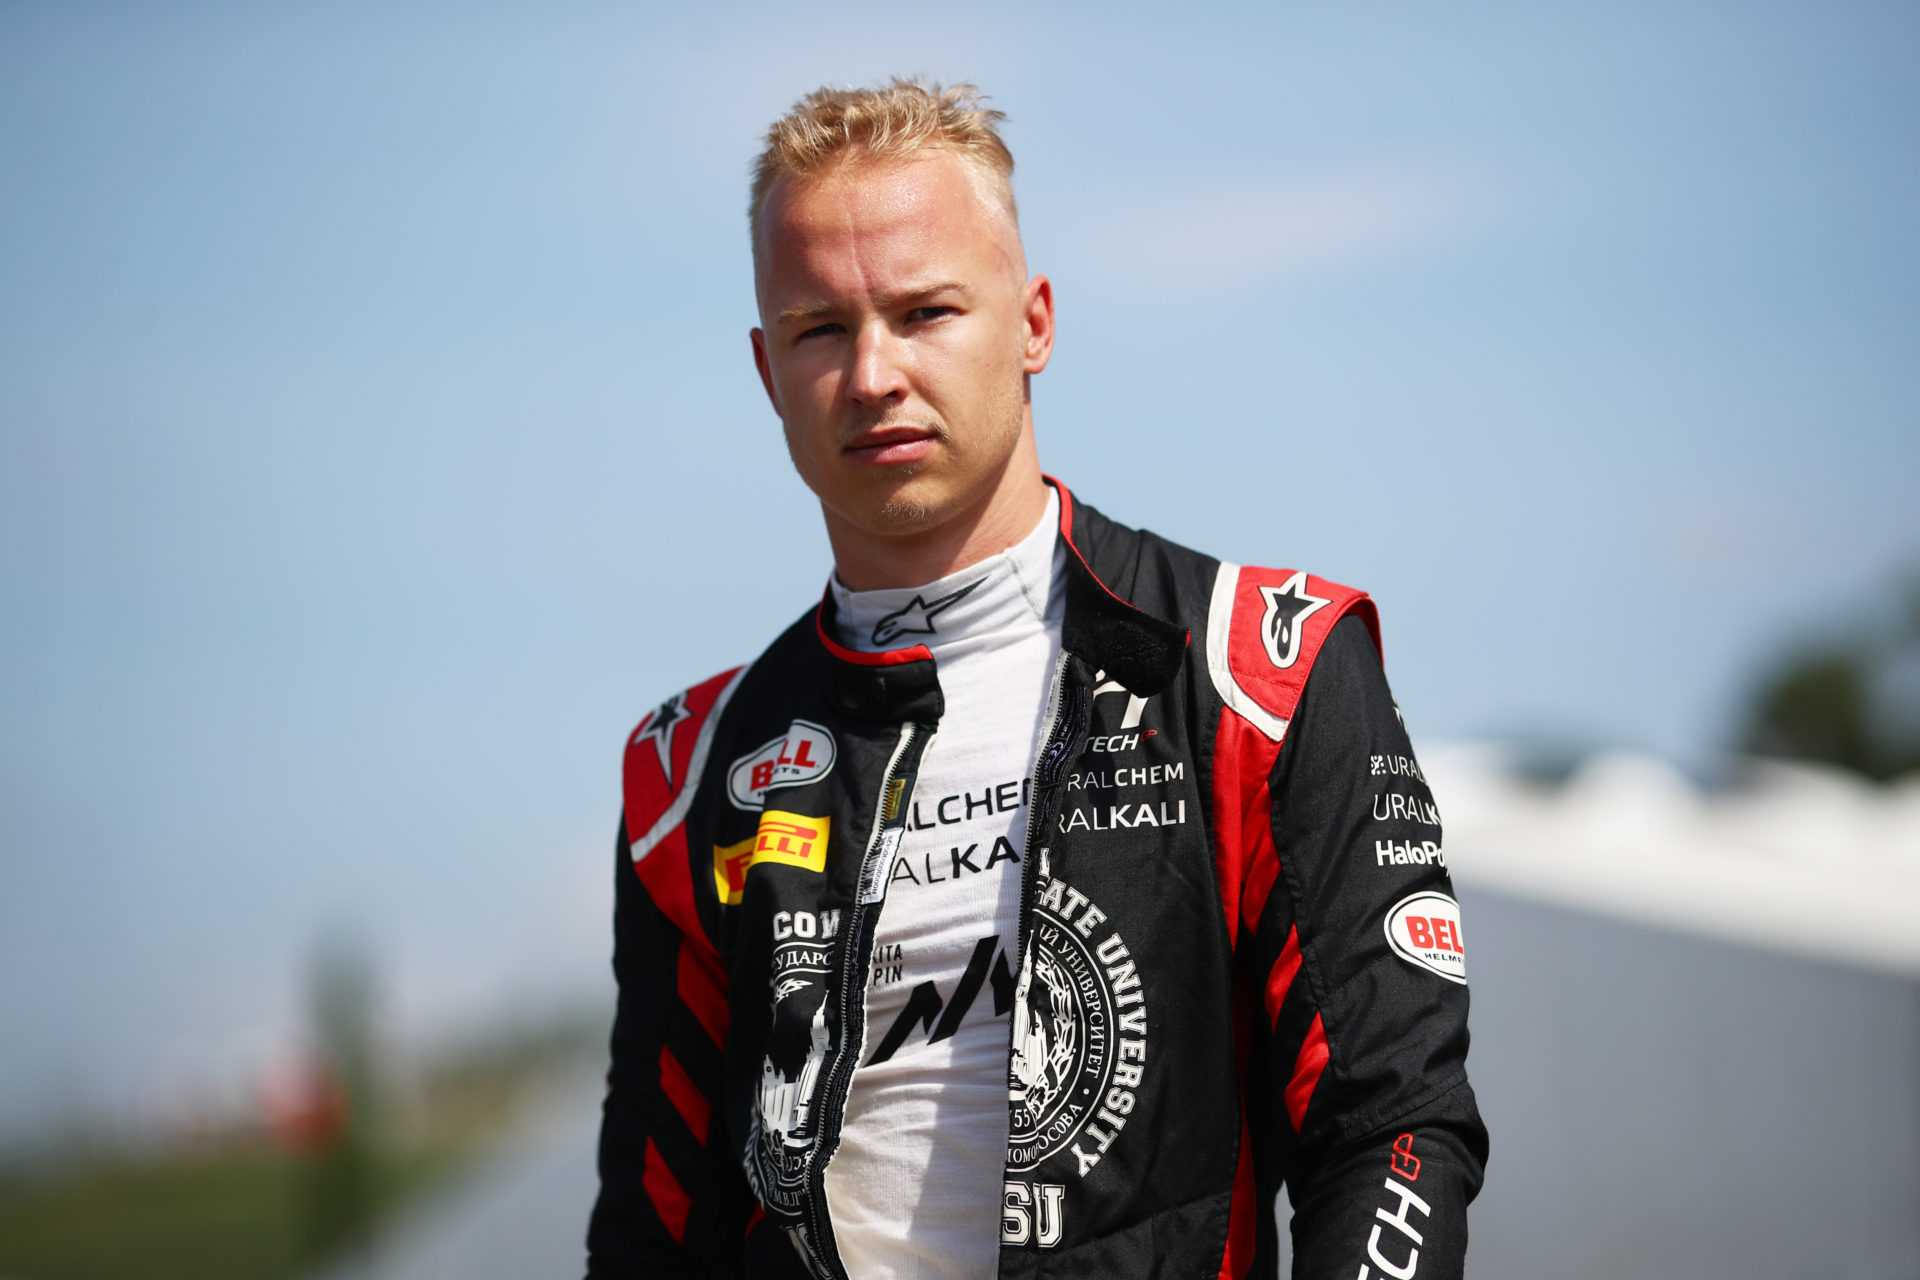 Mazepin will get to keep his Haas F1 spot after allegation